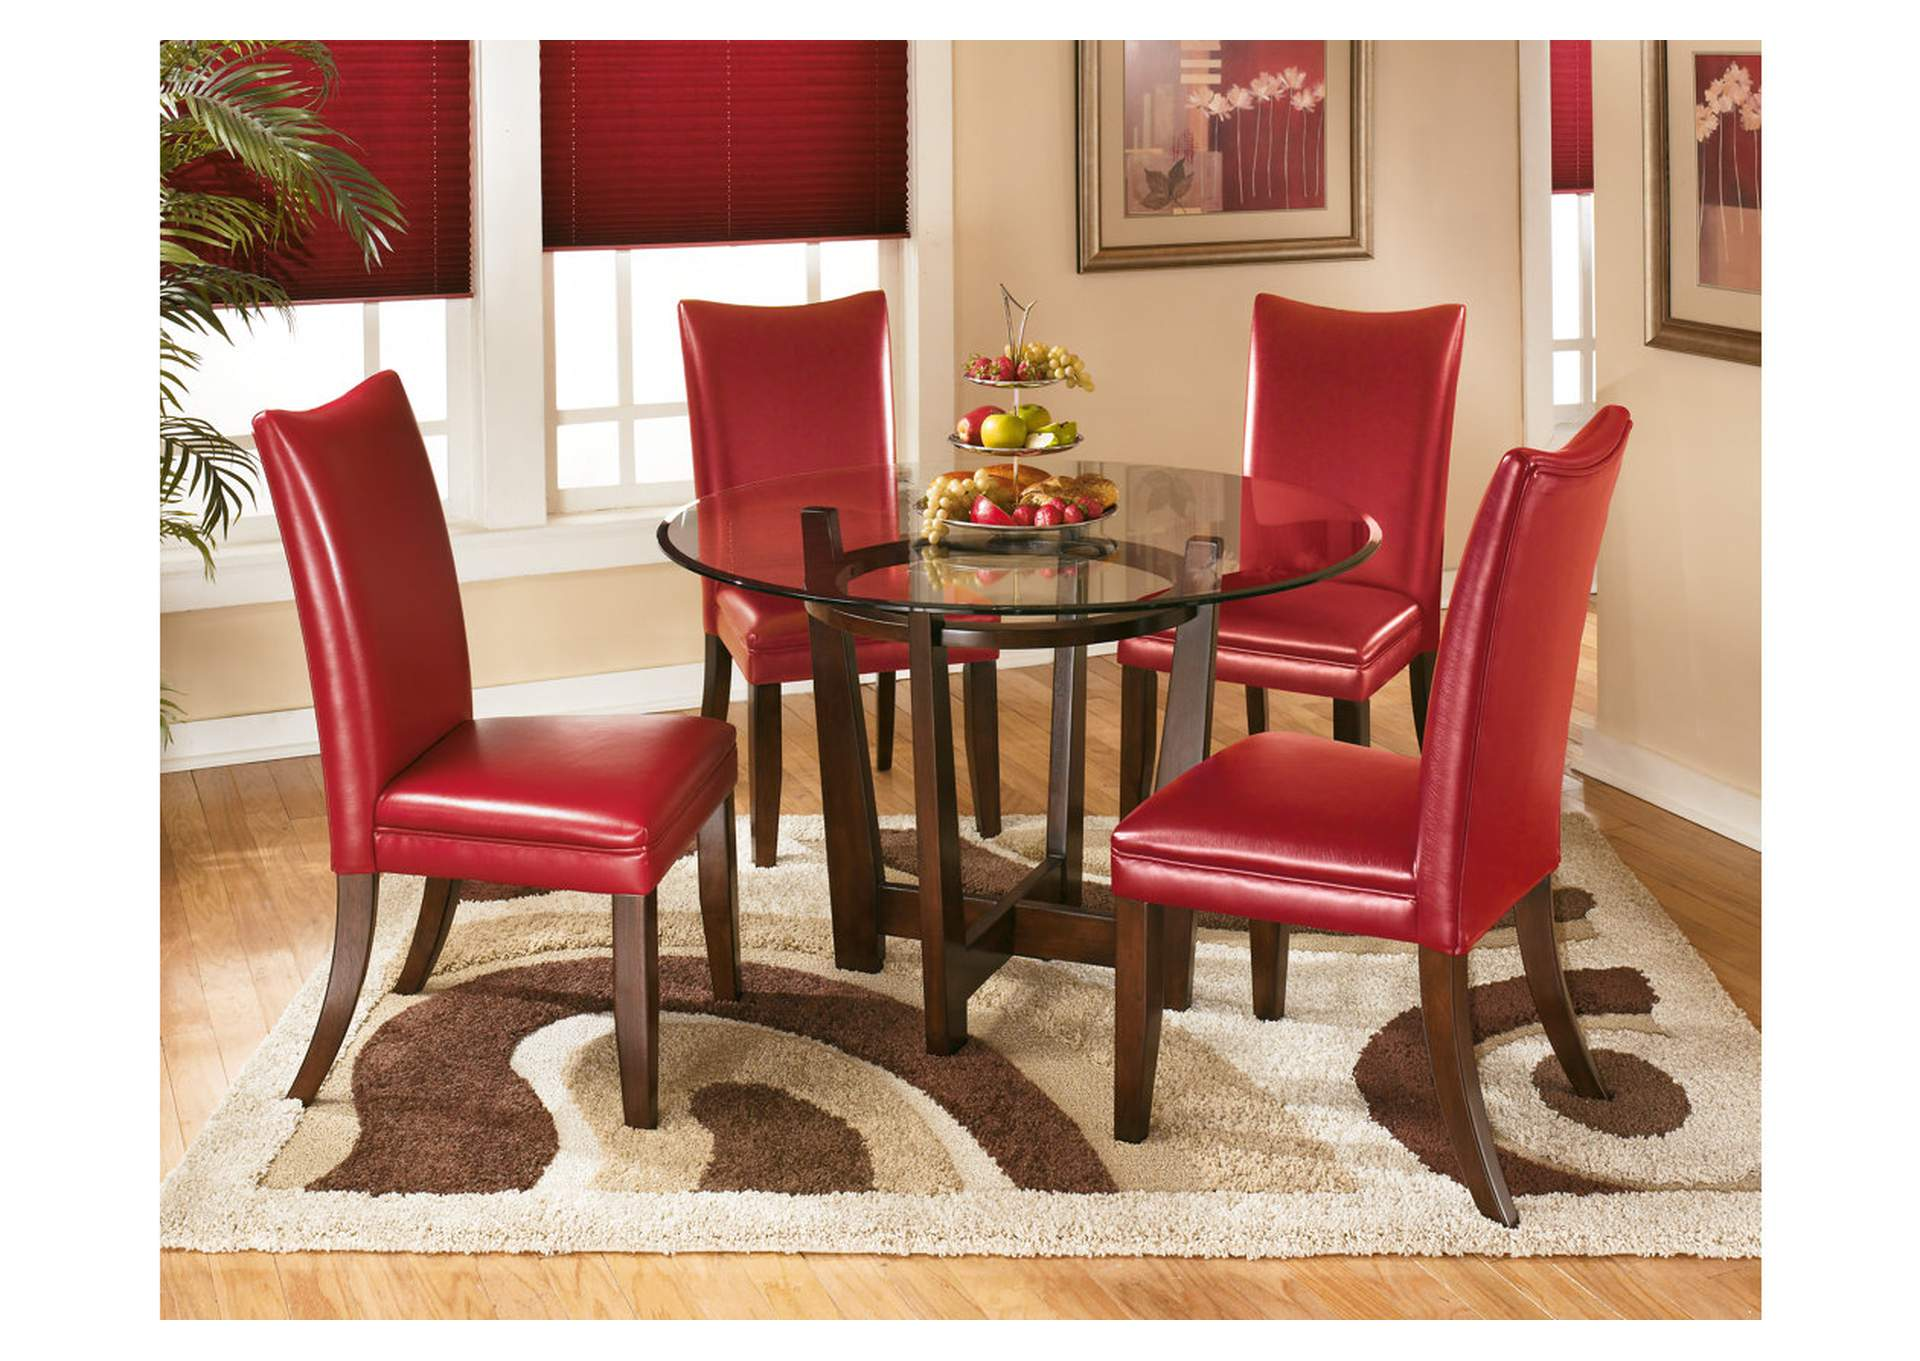 Roses flooring and furniture charell round dining table w for Red dining room table and chairs